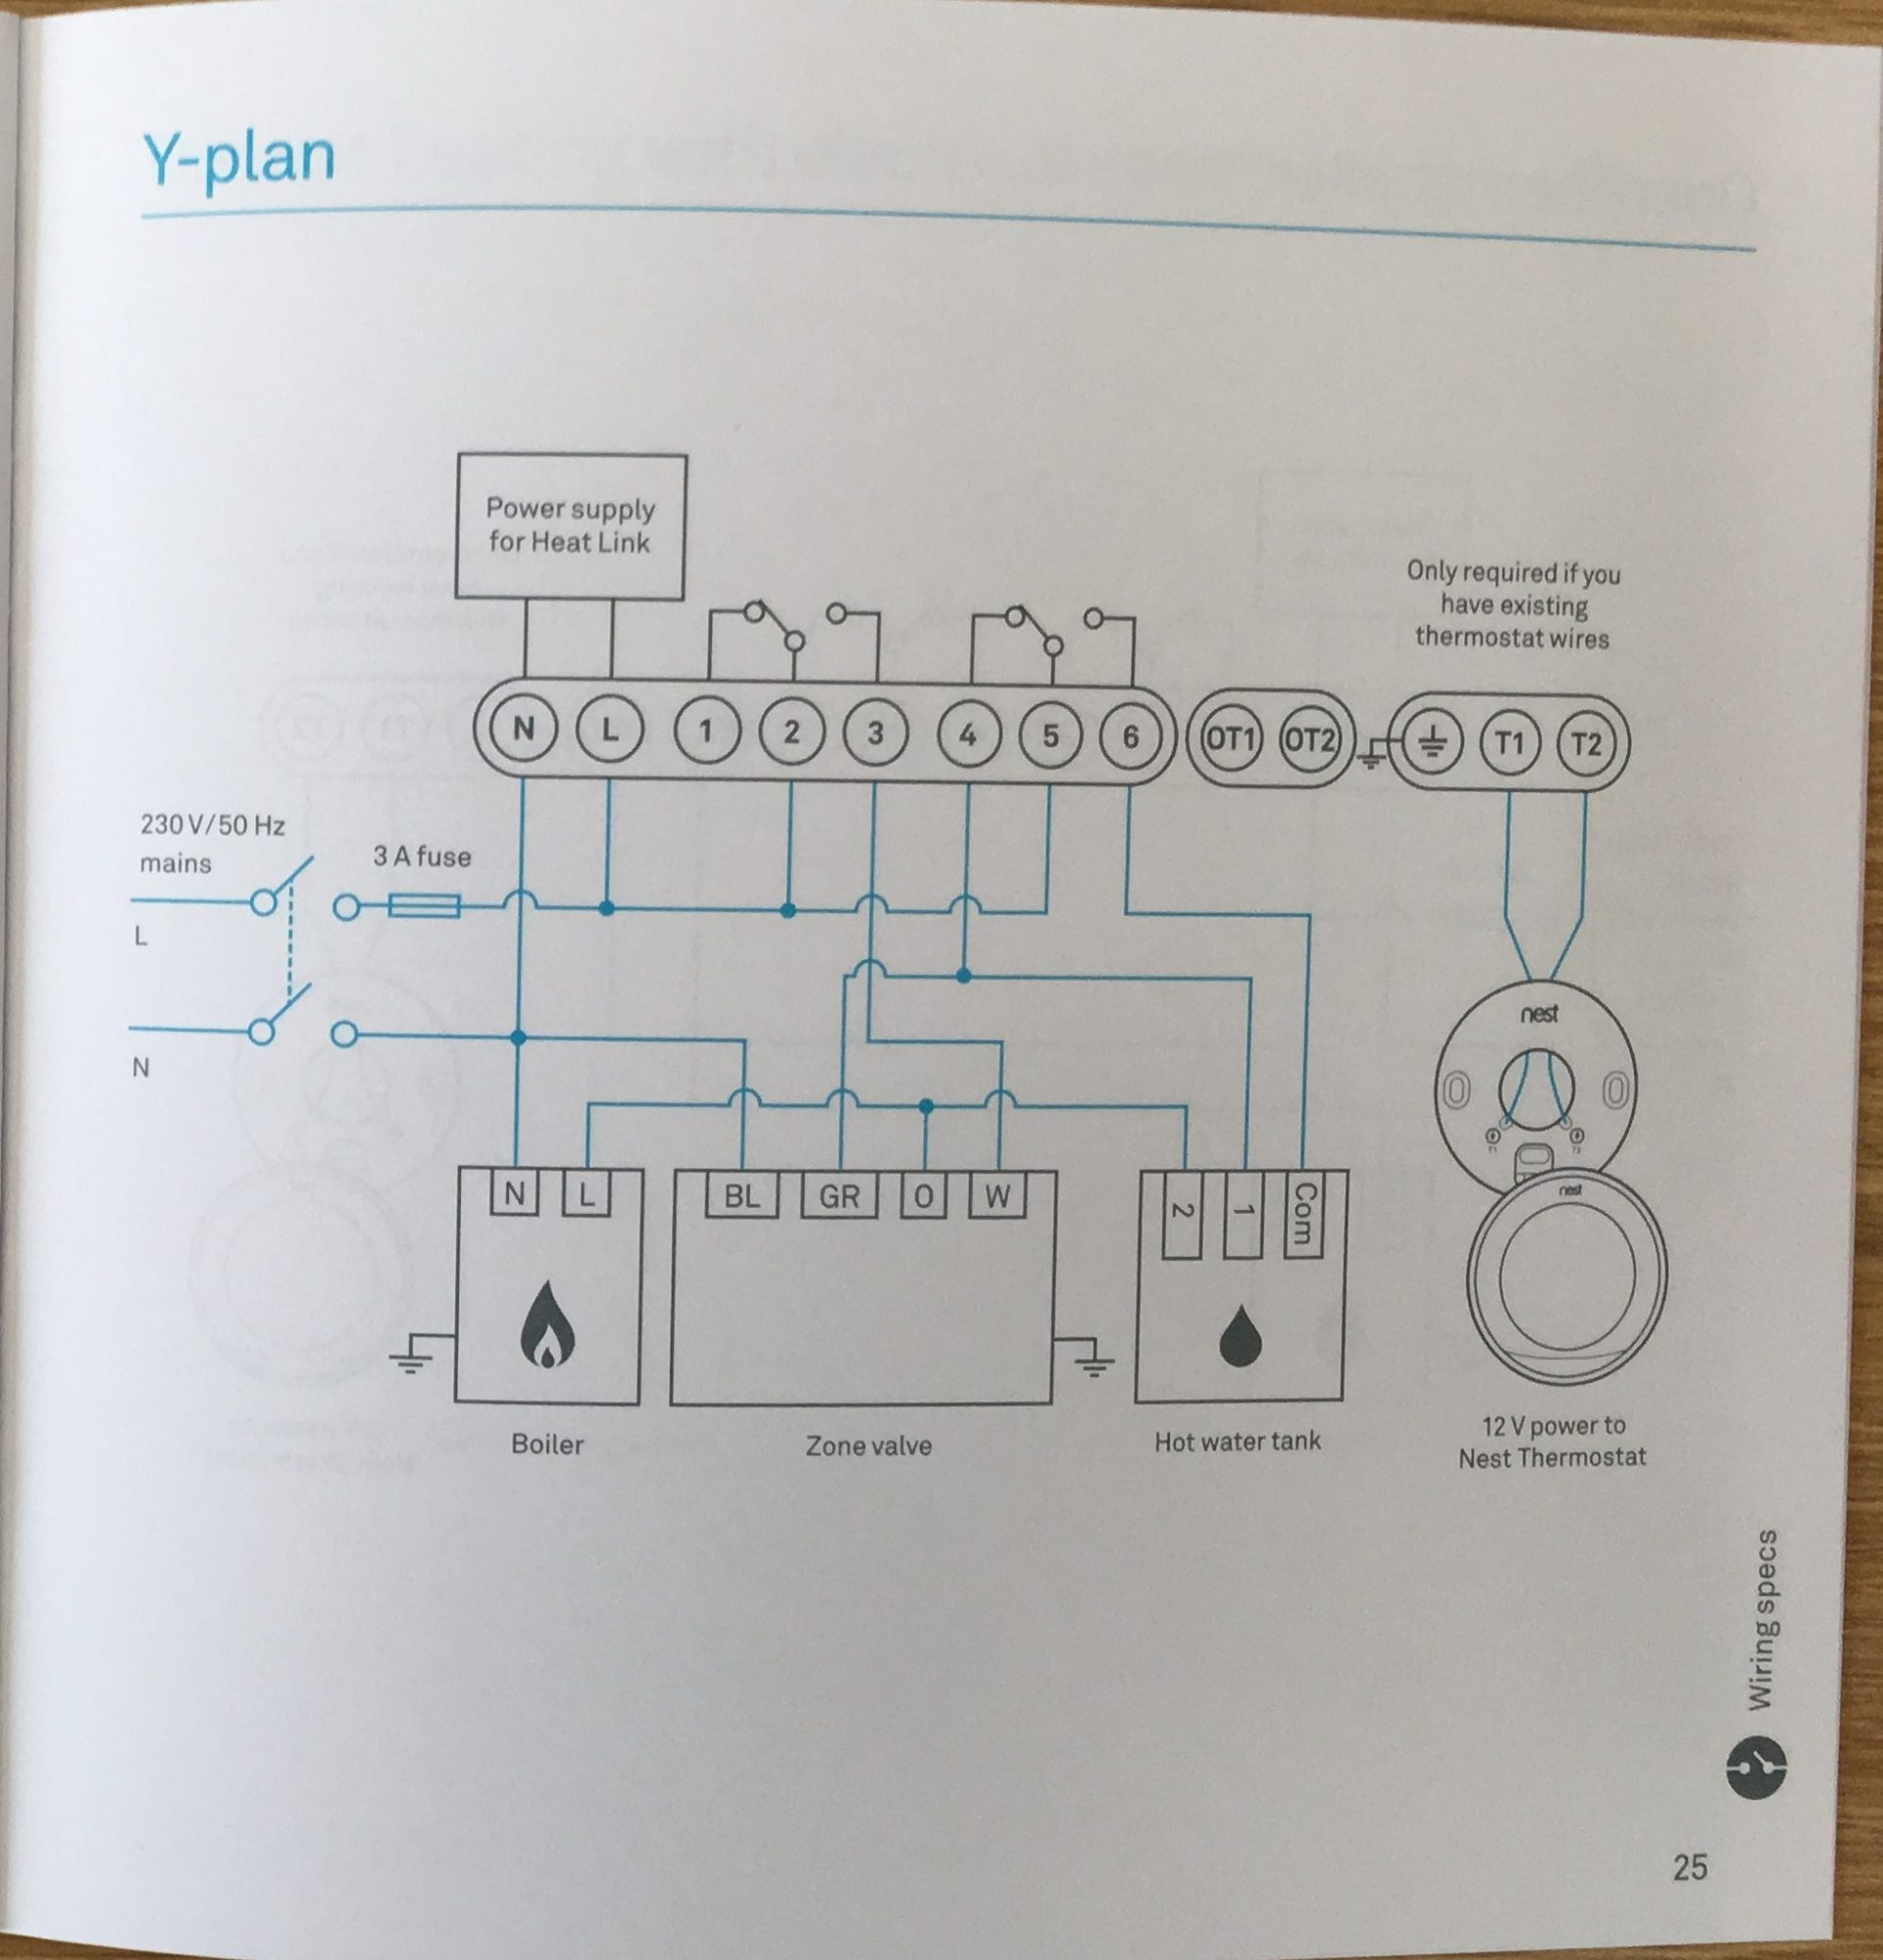 How To Install The Nest Learning Thermostat (3Rd Gen) In A Y-Plan - Nest Wiring Diagram System Boiler